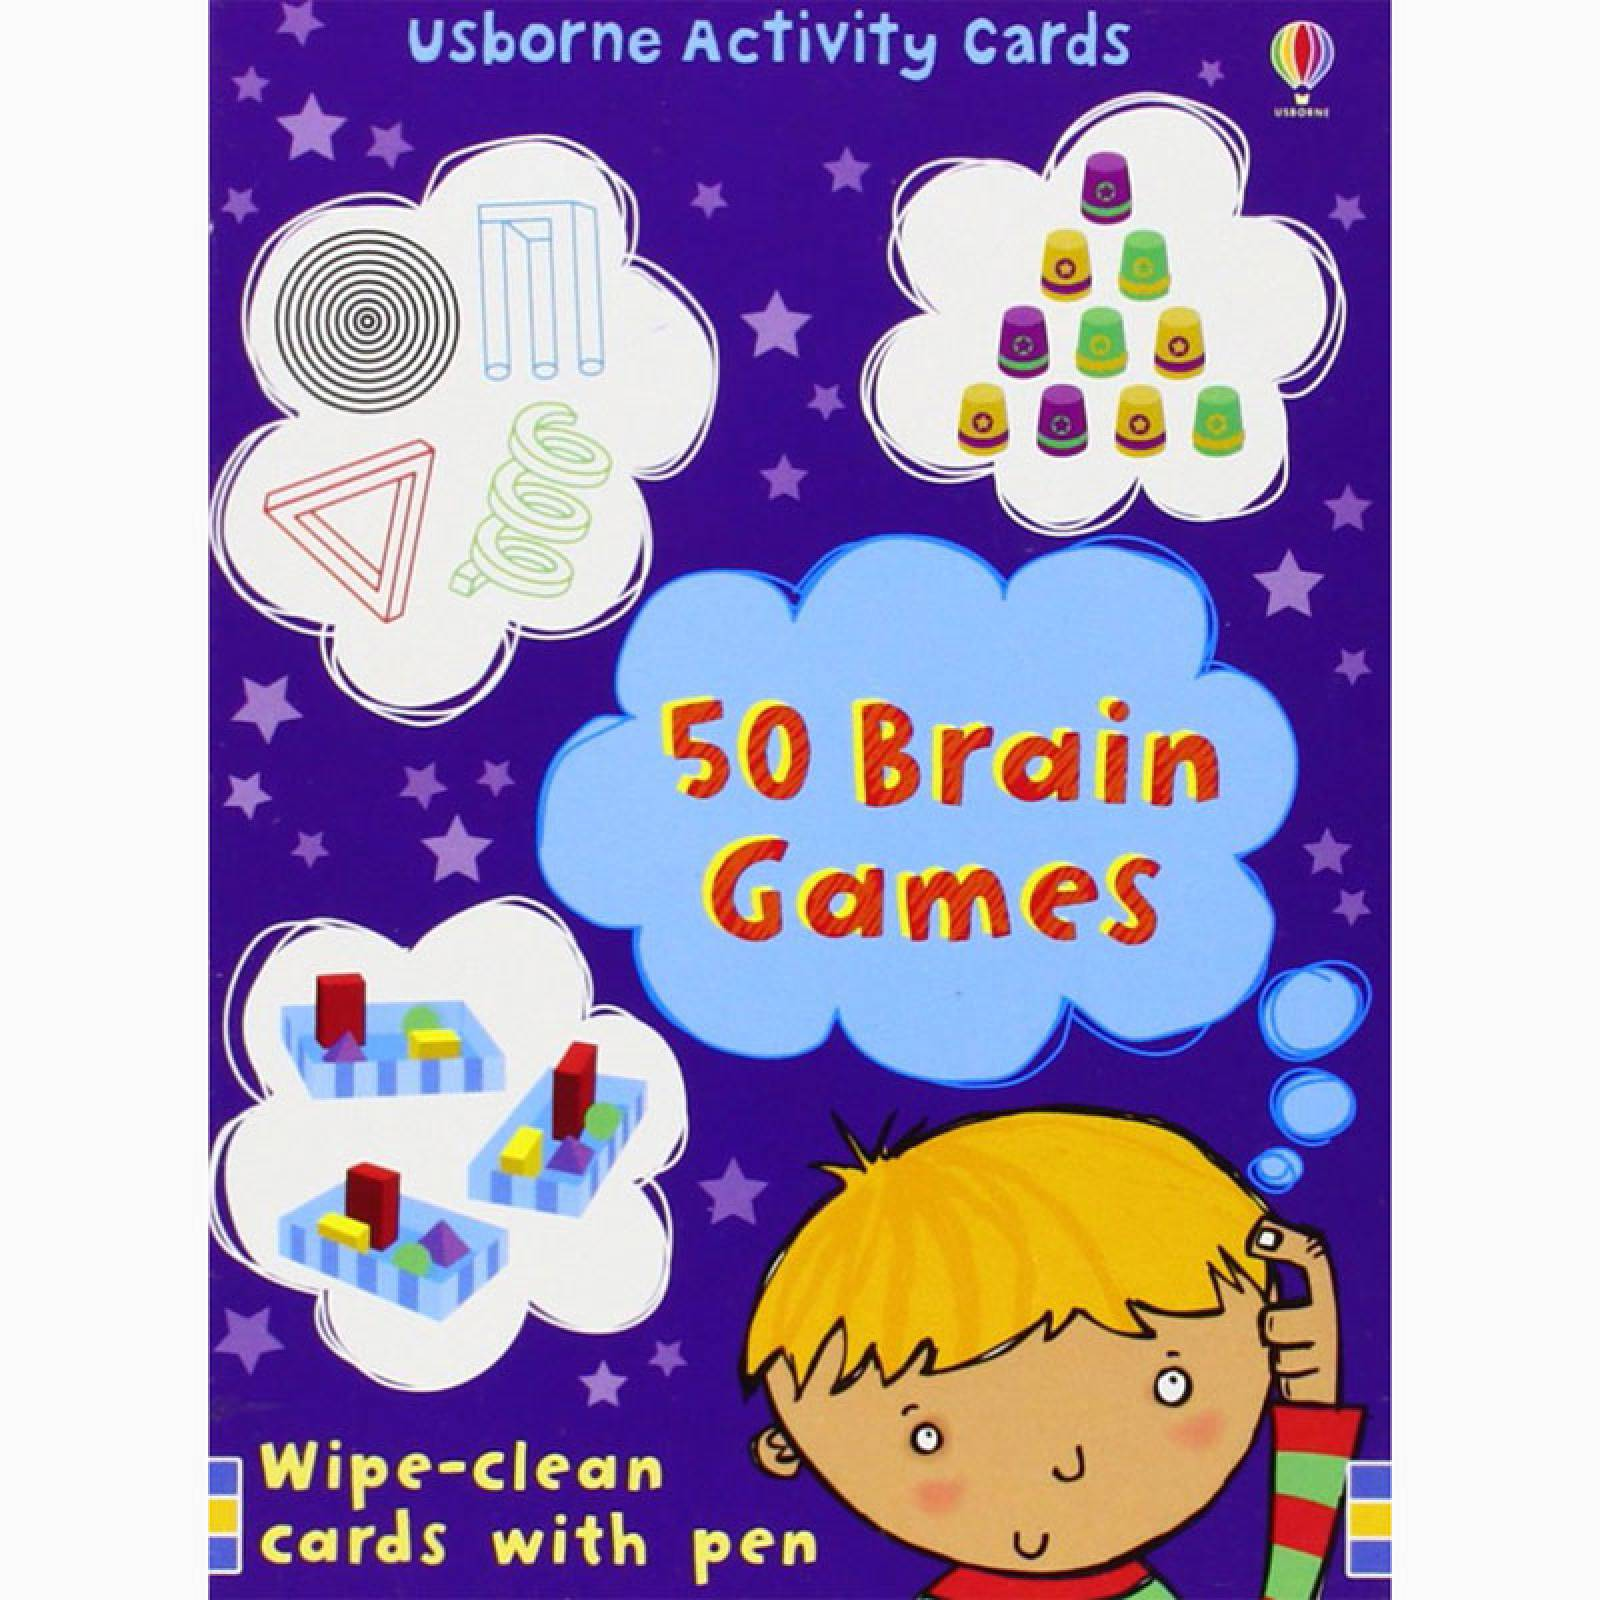 50 Brain Games Activity Cards